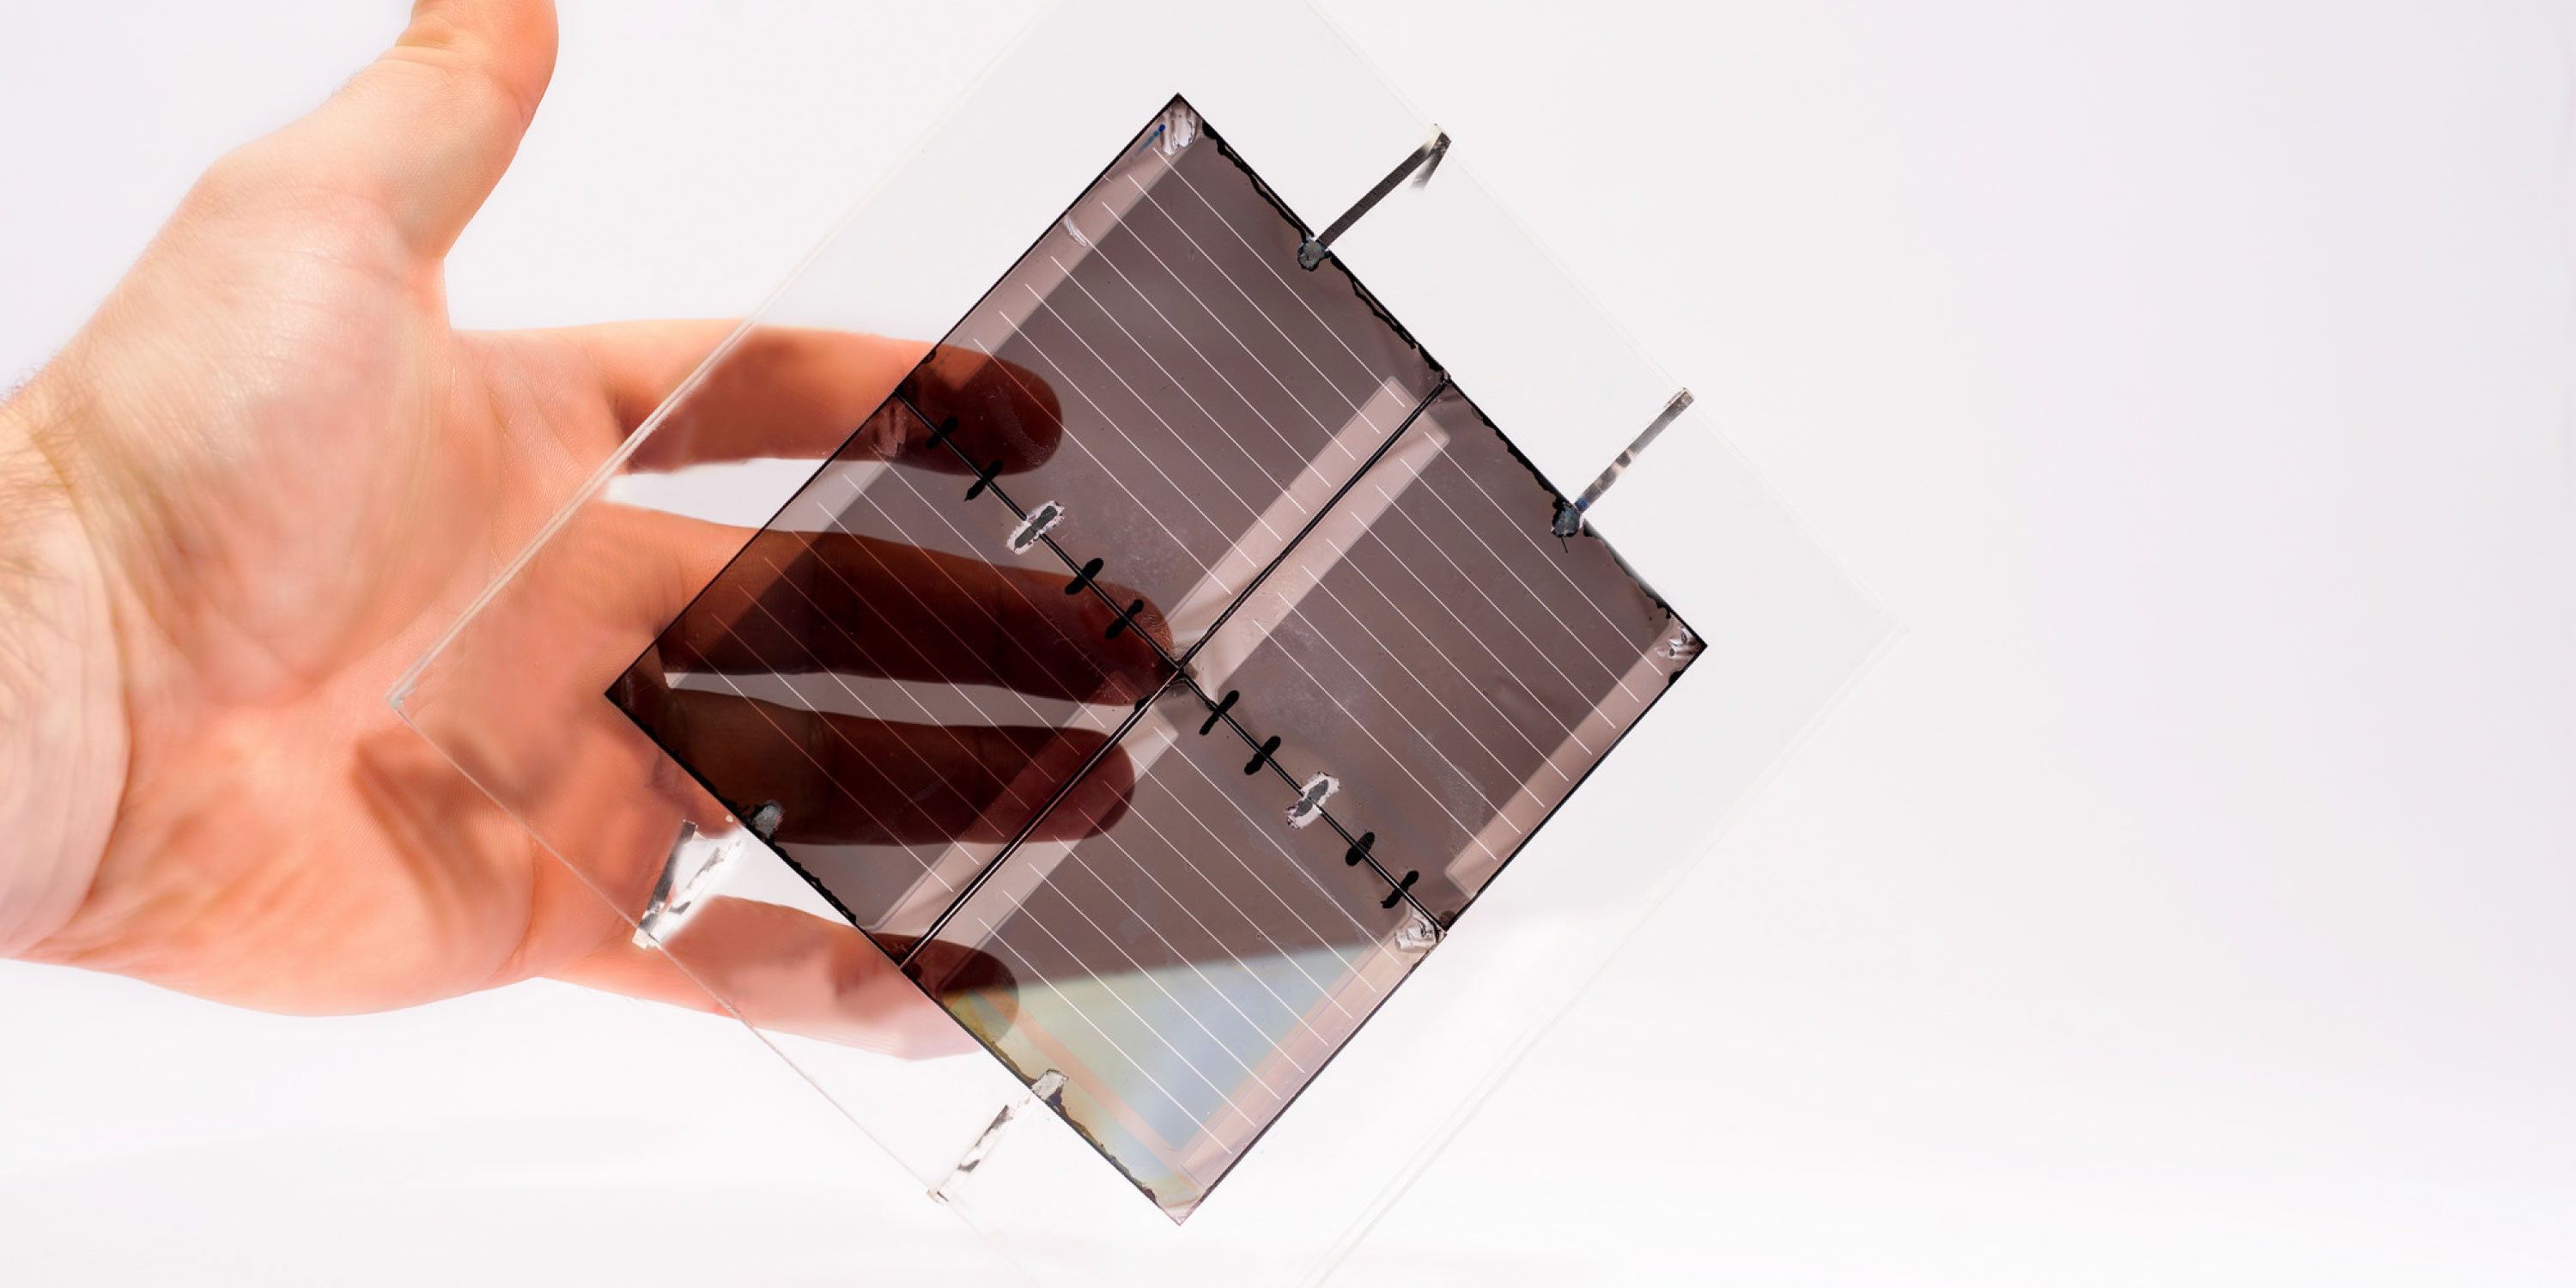 smart-energy-photovoltaics-imec